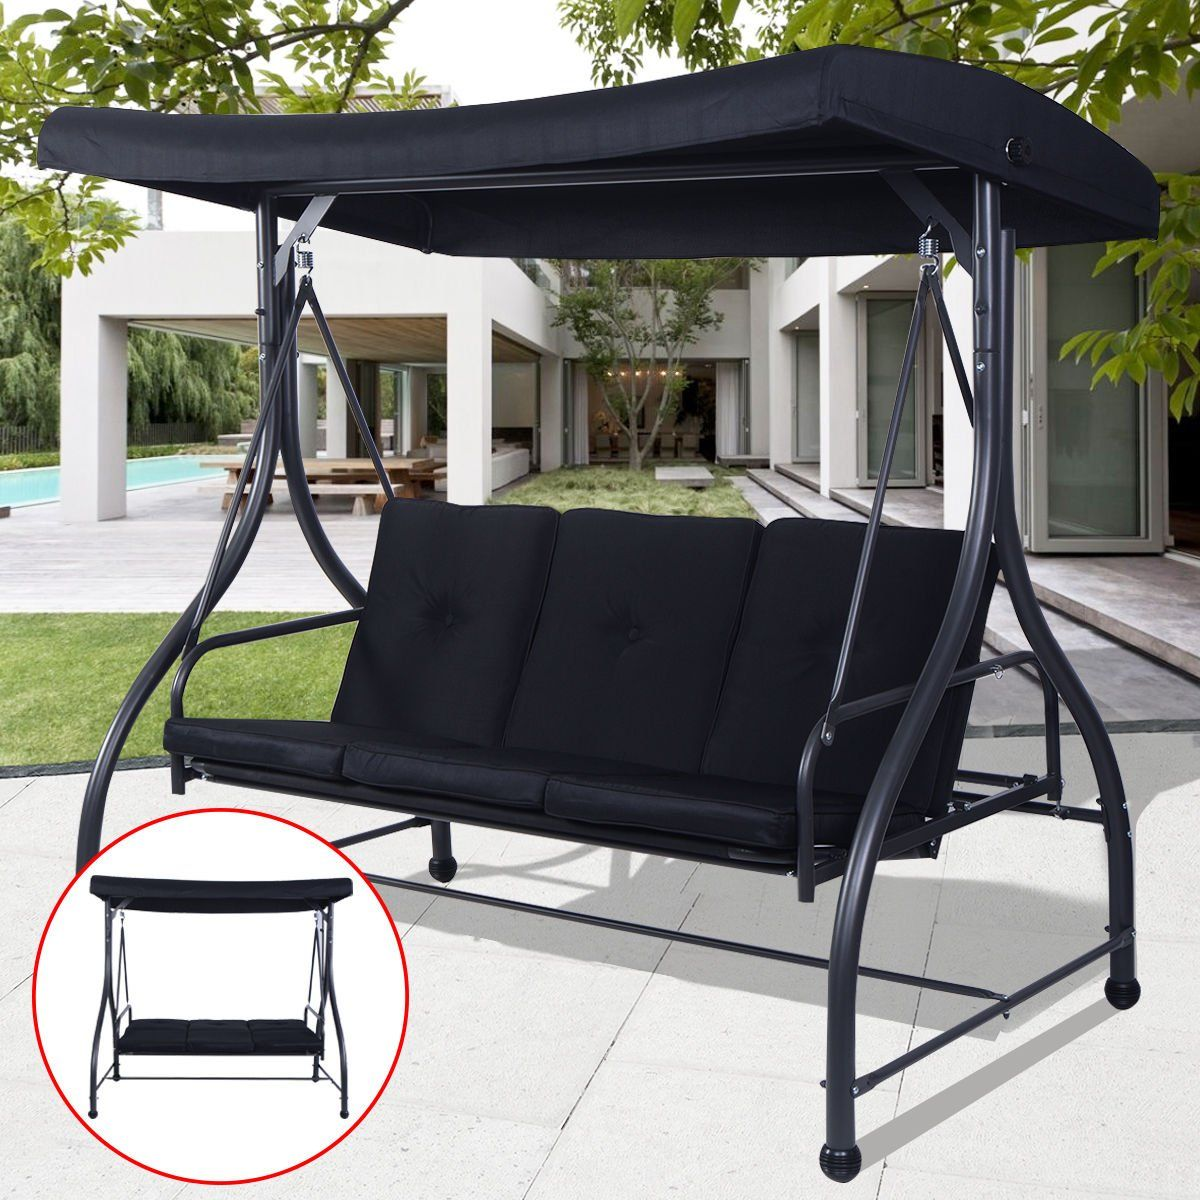 Black Converting Bed Swing Hammock Chair Patio 3 Person Seat With ...